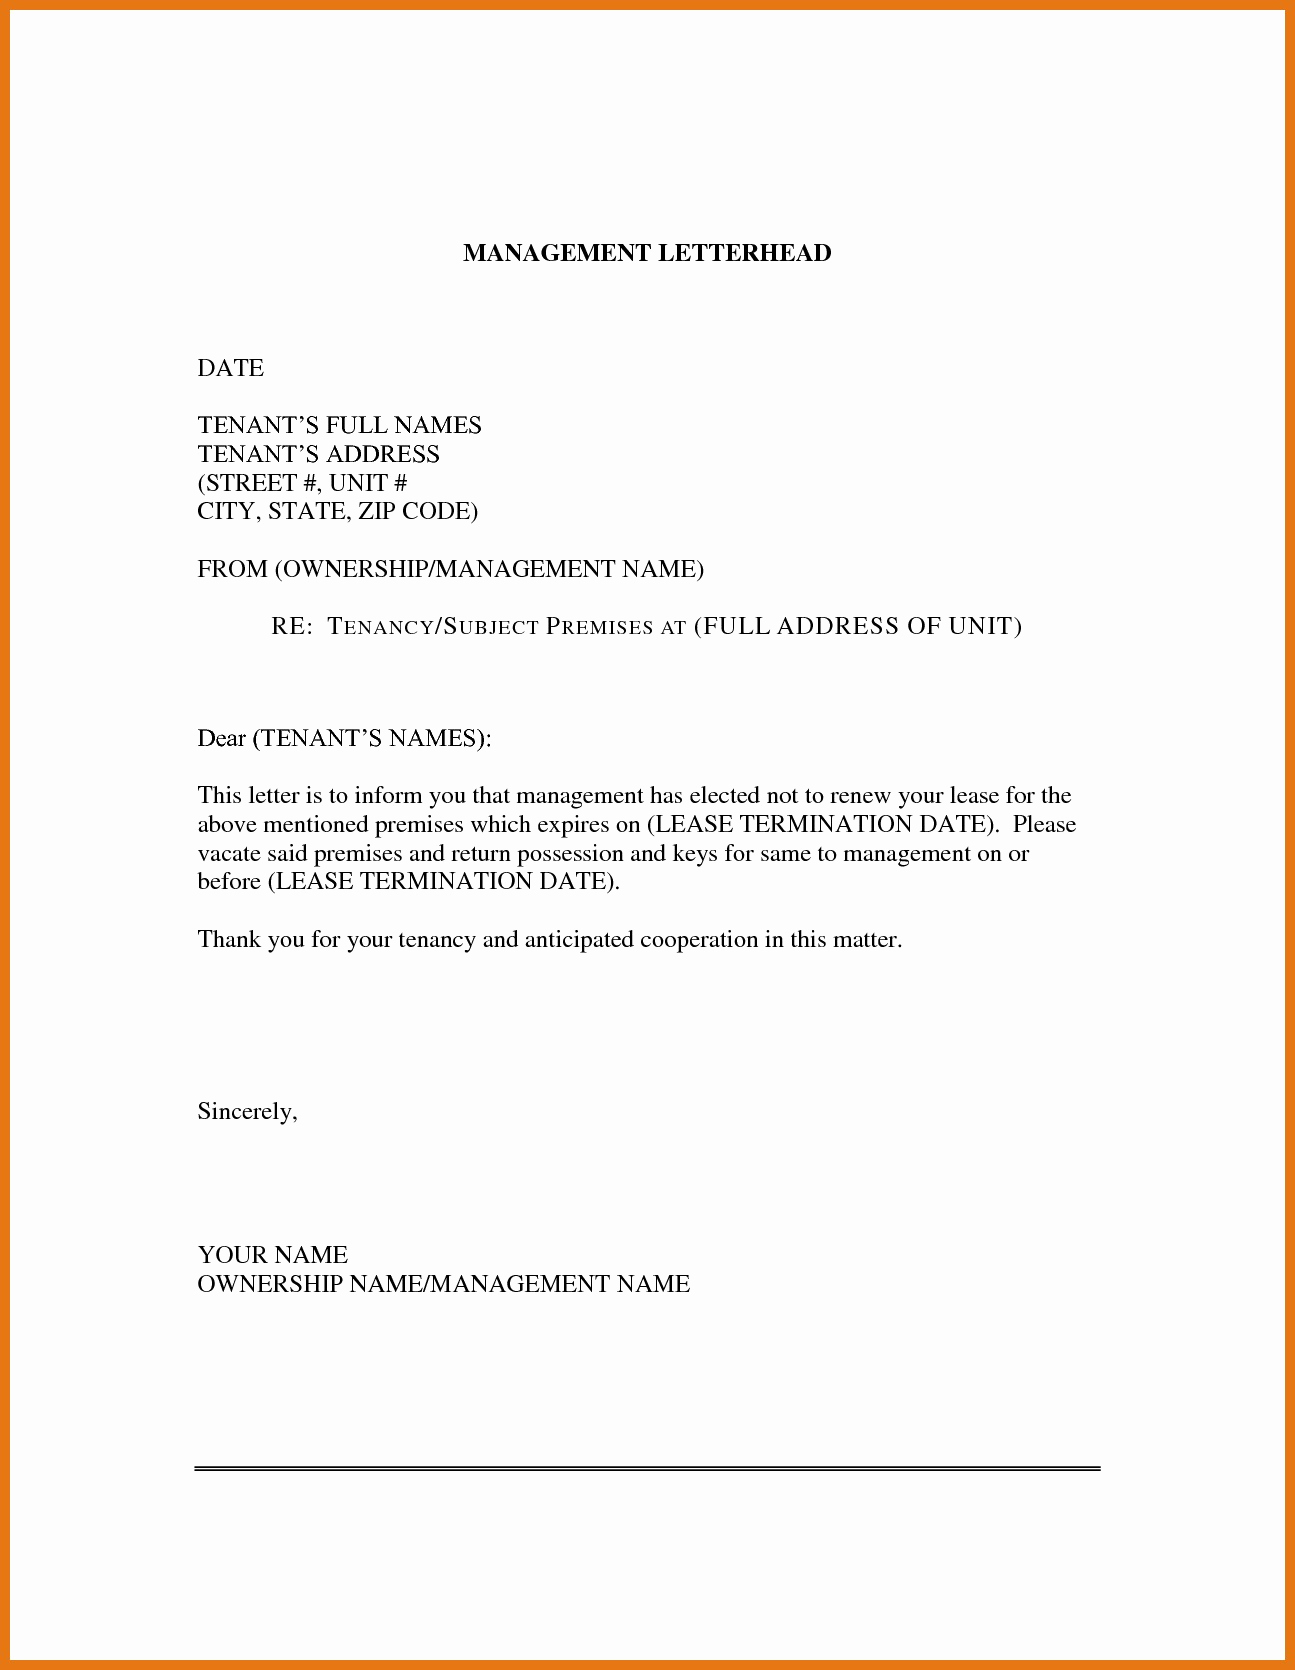 Lease Renewal Reminder Letter Template - Contract Renewal Letter Template Fresh Renewal Letter Sample Best